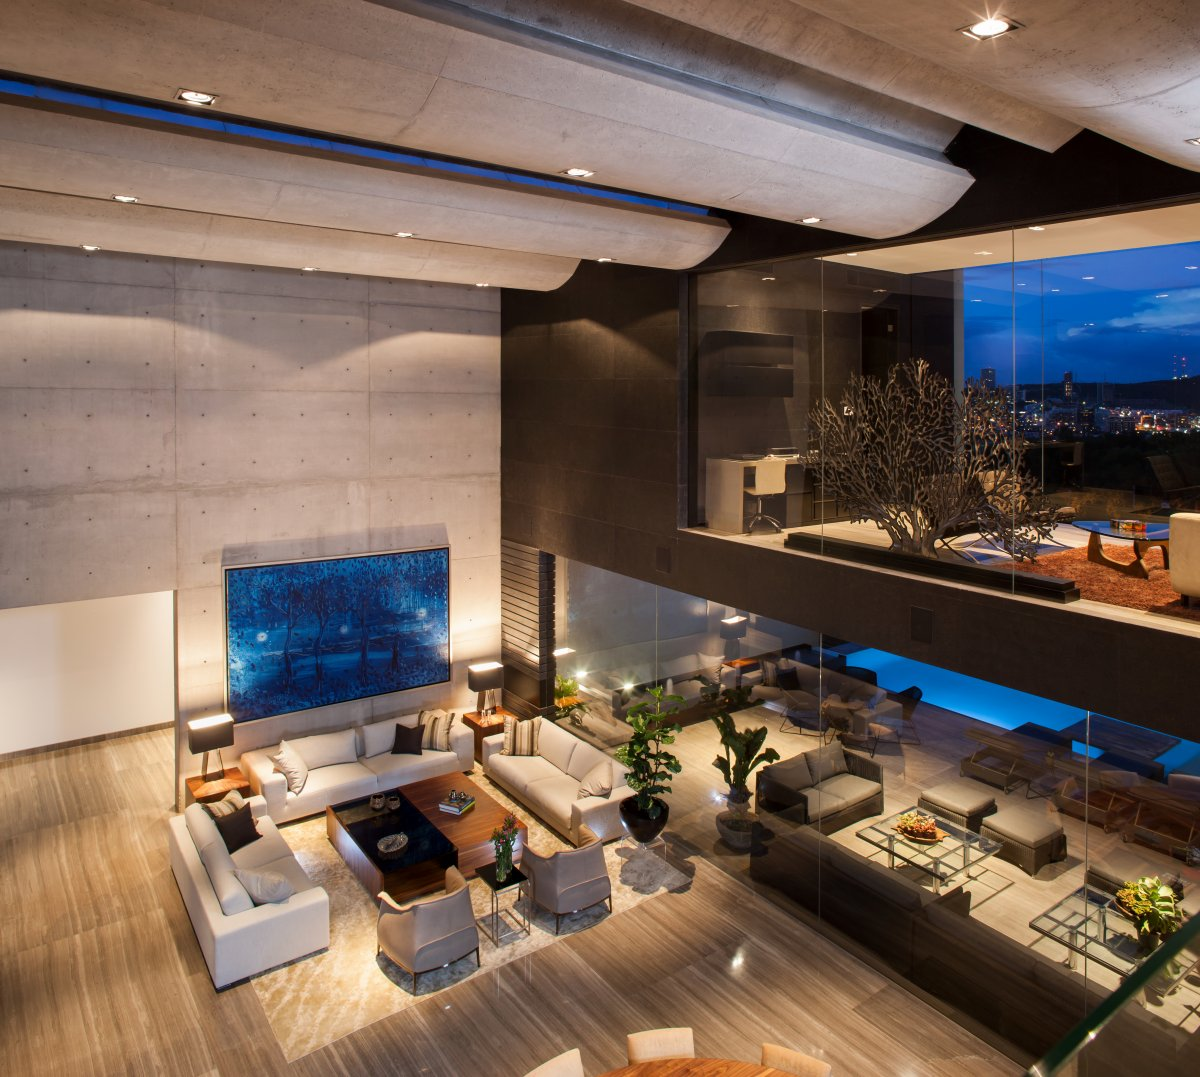 Double Height Living Space, Glass Walls, Exposed Concrete, Stylish Contemporary Home in Garza Garcia, Mexico